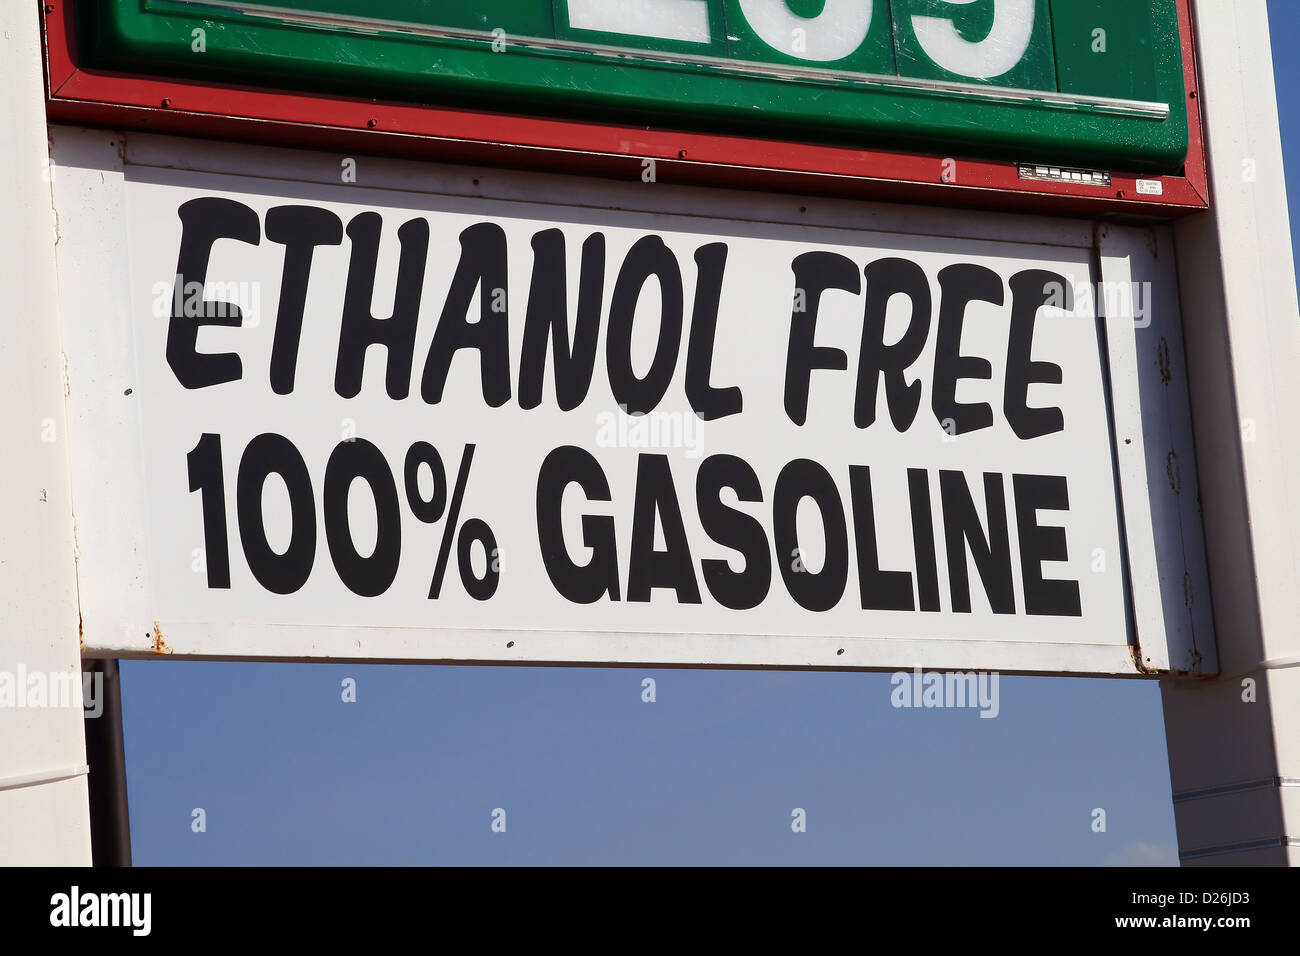 Gas Ad Stock Photos & Gas Ad Stock Images - Alamy